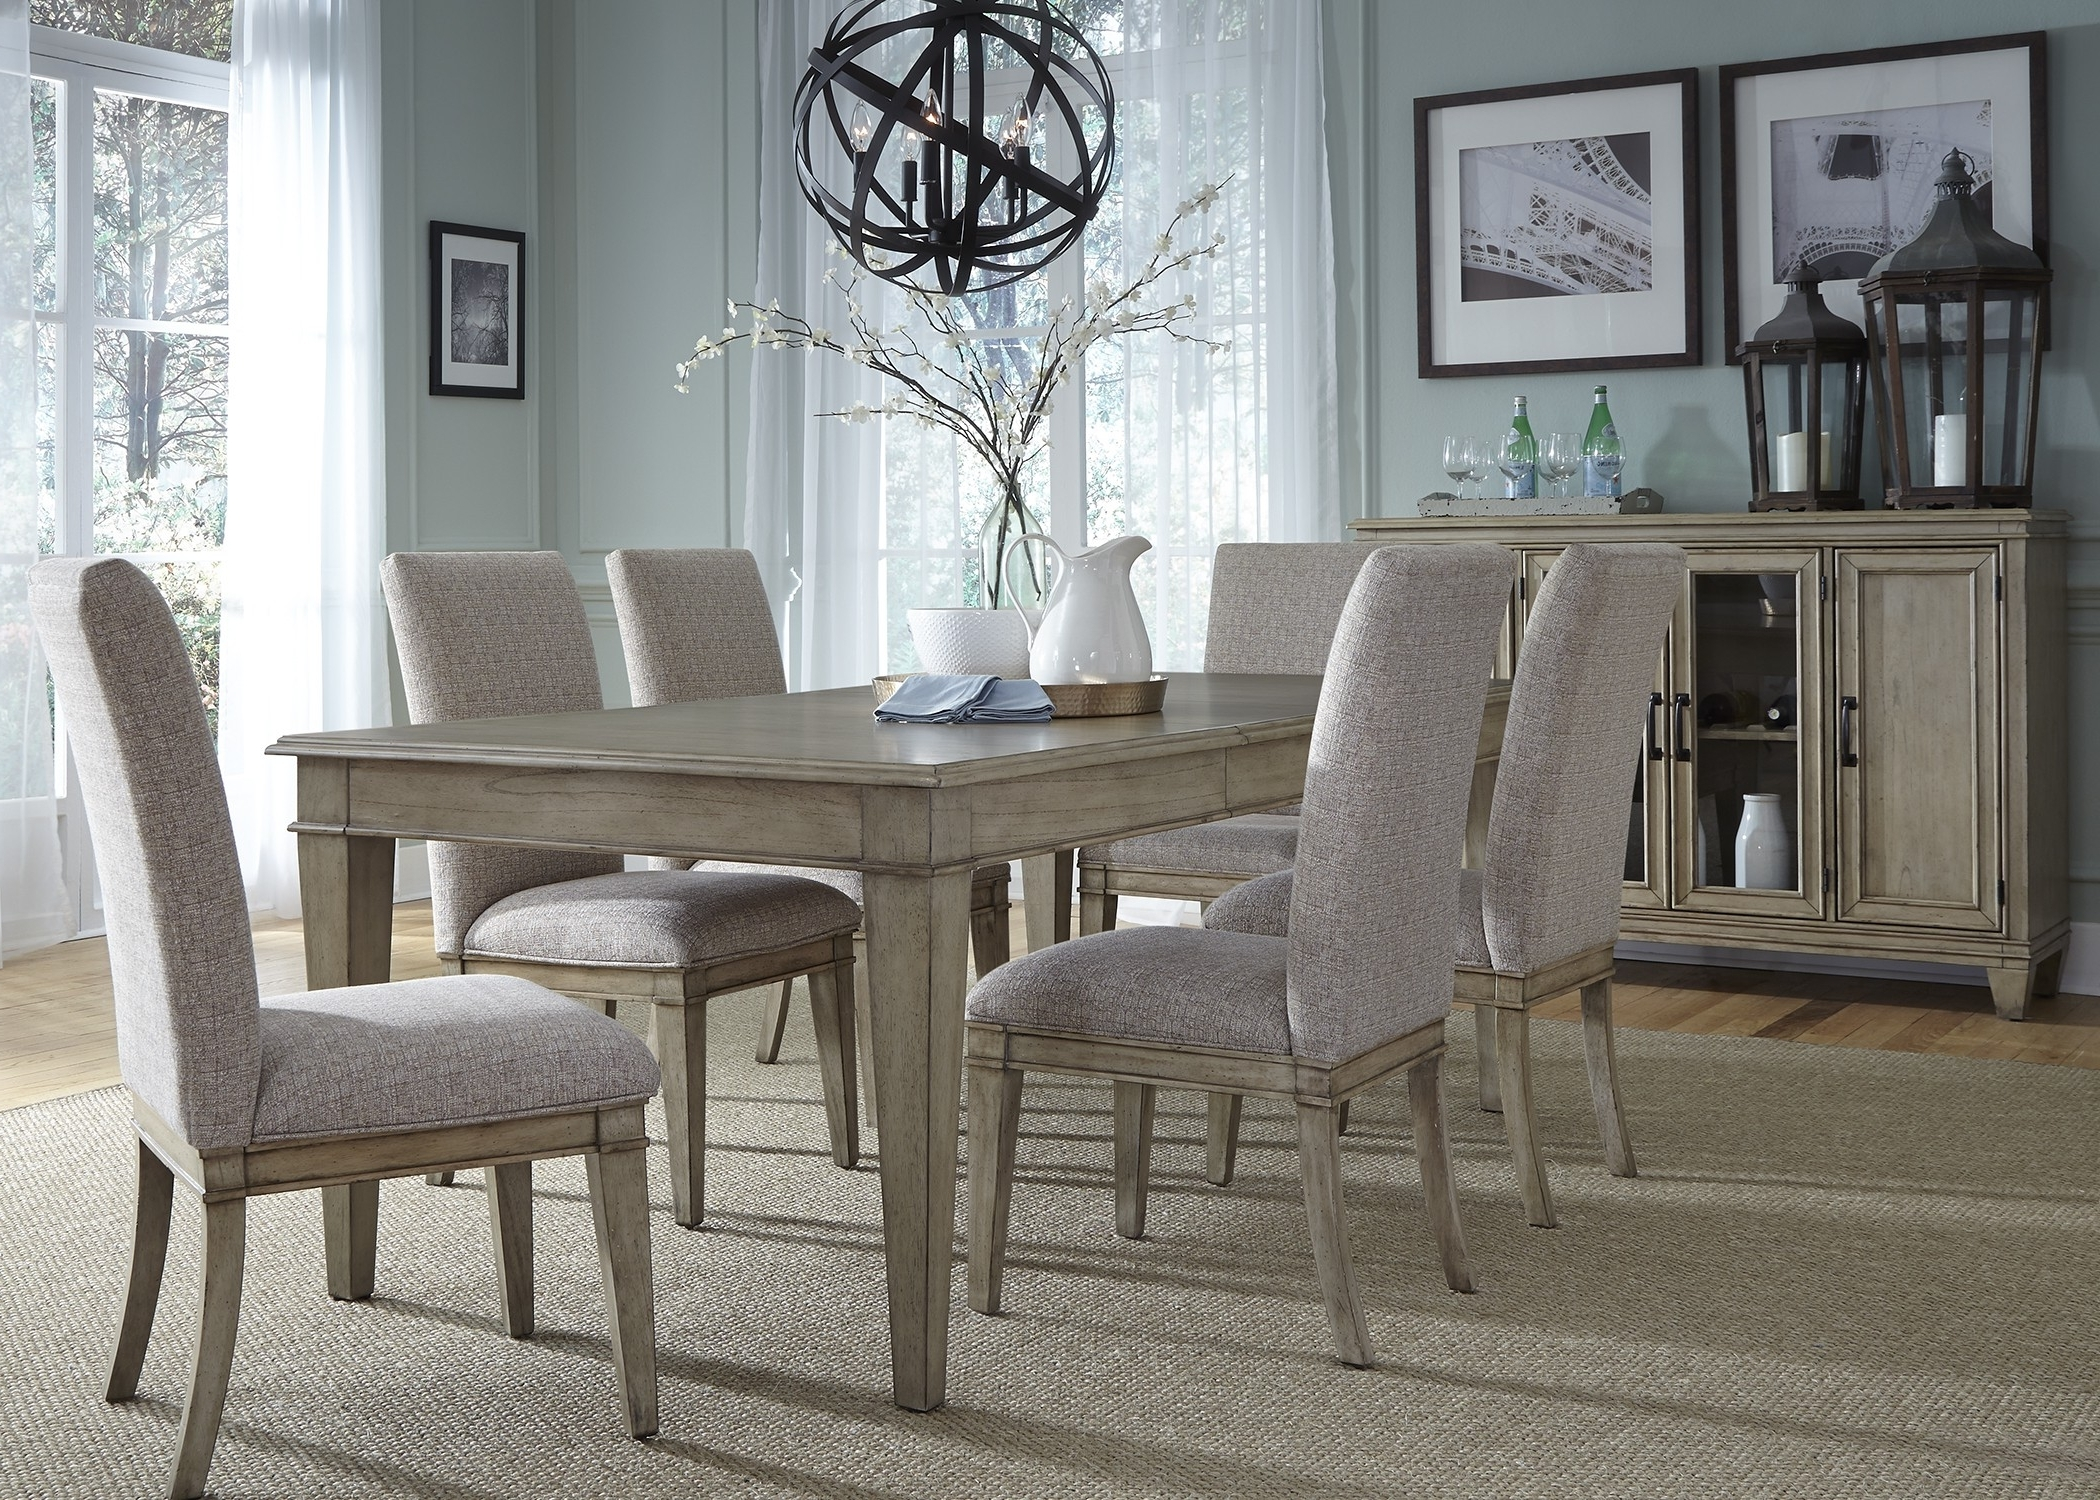 Jaxon Grey 6 Piece Rectangle Extension Dining Sets With Bench & Uph Chairs With Regard To Current  (View 14 of 25)